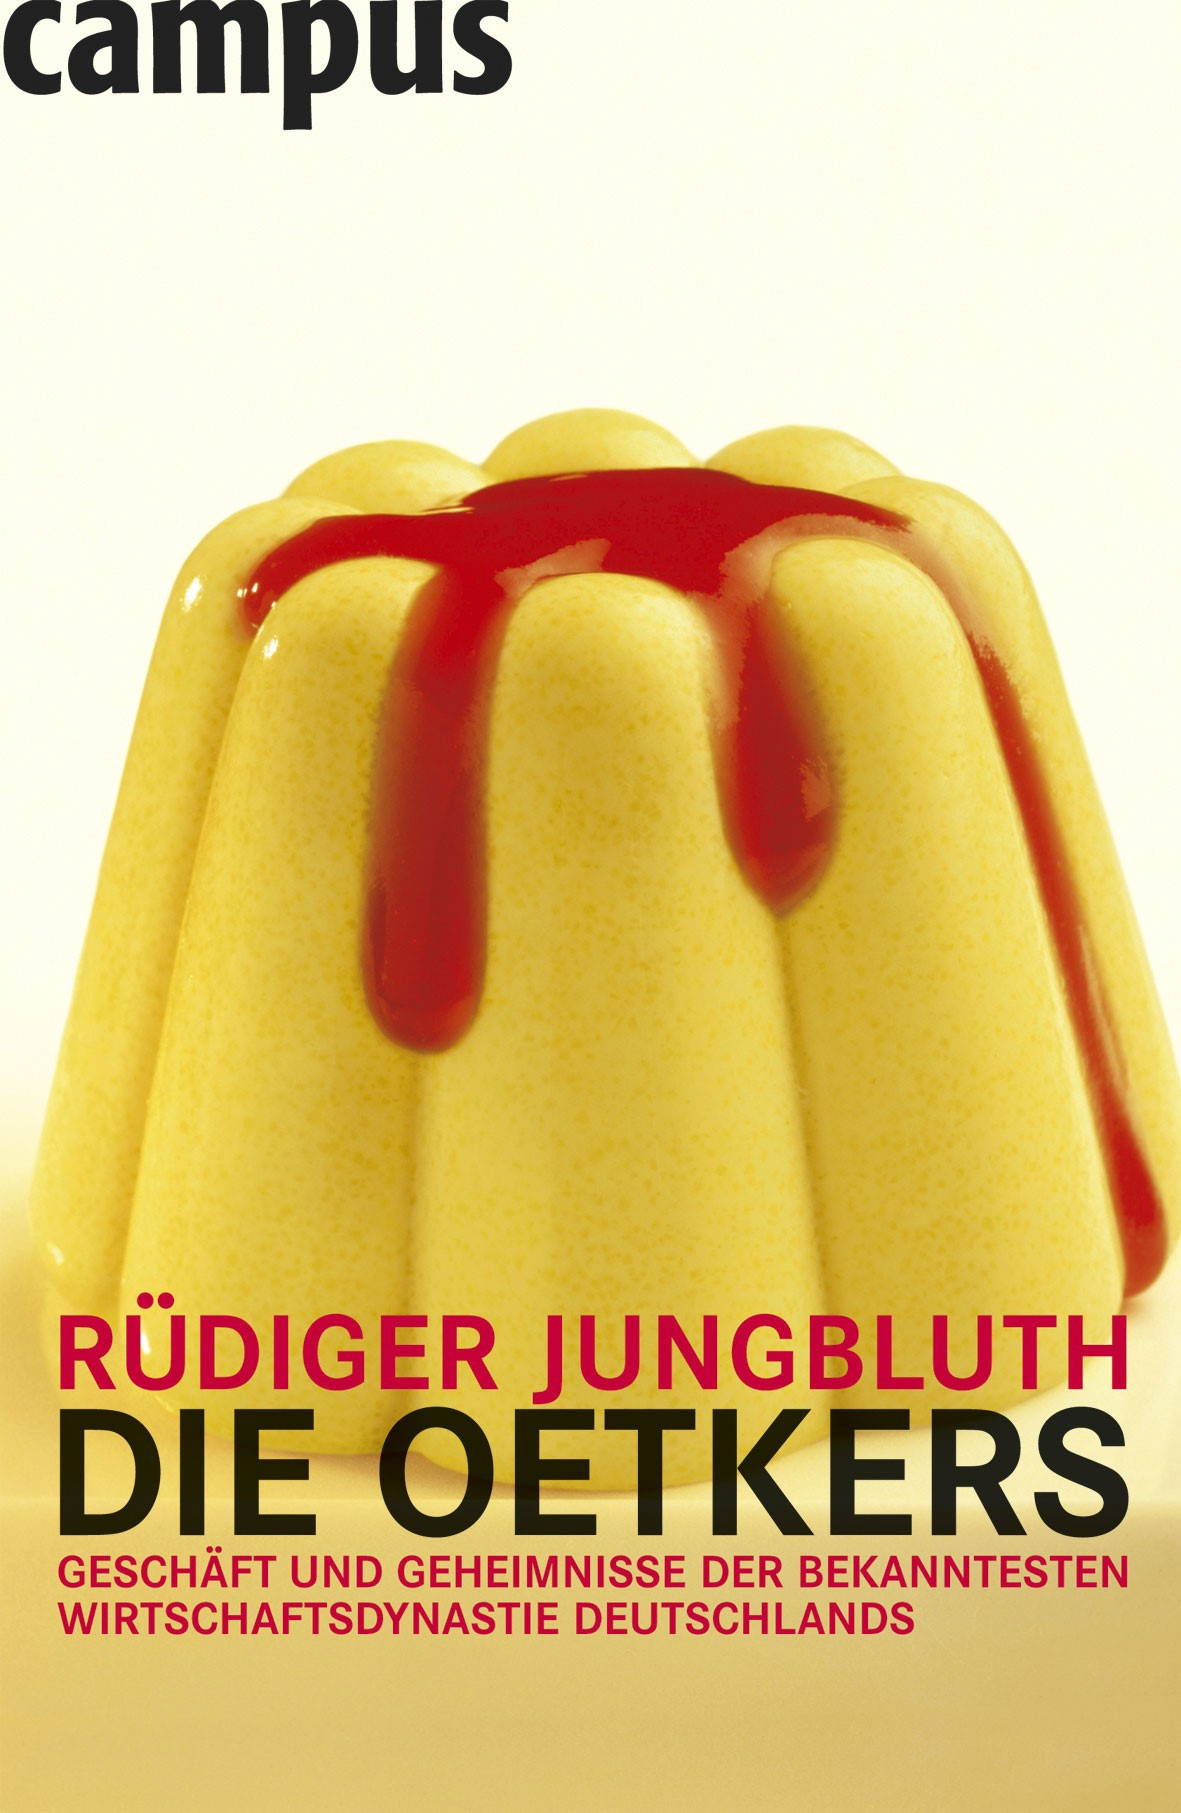 Die Oetkers | Jungbluth, 2004 | Buch (Cover)